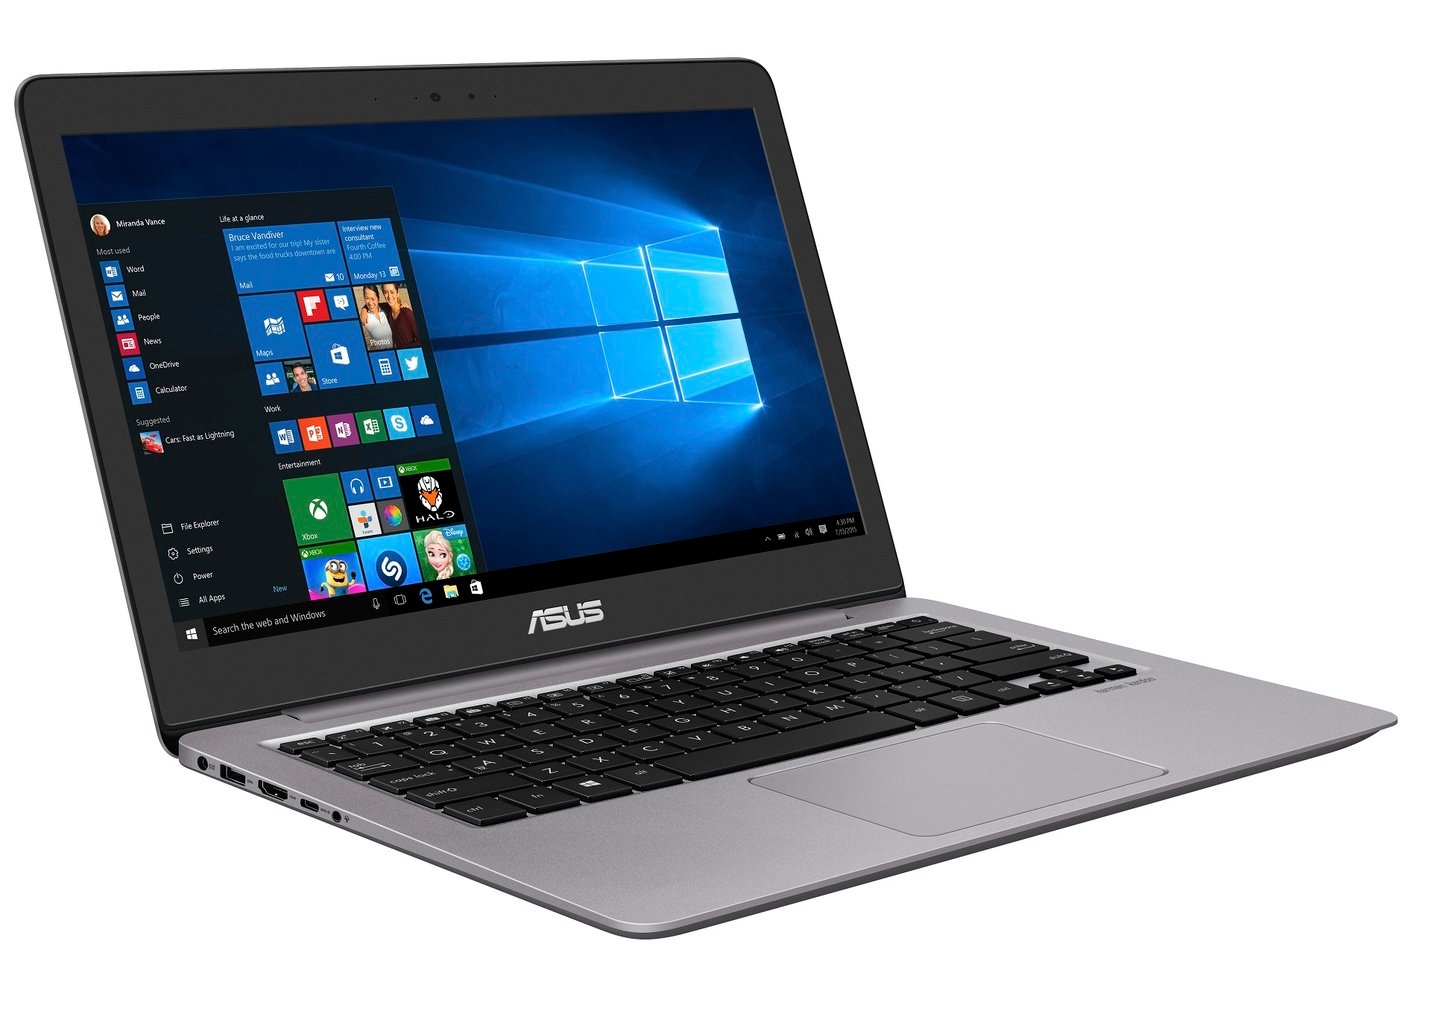 "Asus UX501VW Zenbook Pro 15.6"" i7 8GB 512GB SSD Windows"